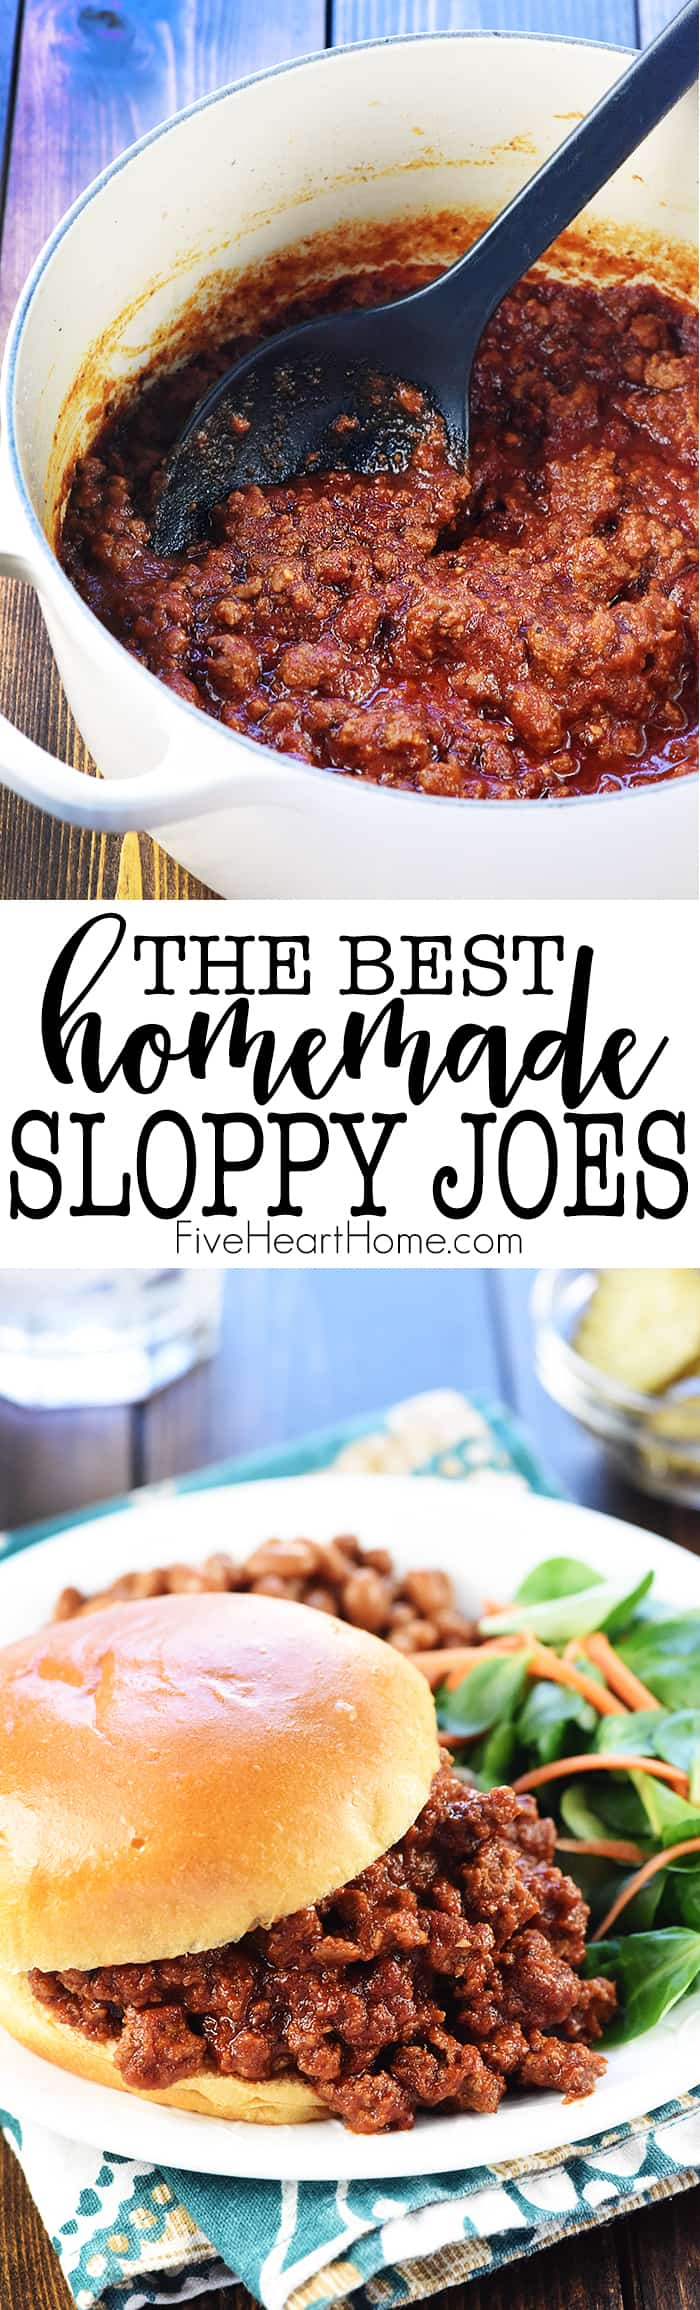 The BEST Homemade Sloppy Joes ~ delicious as well as quick and easy to make using real ingredients in lieu of a store-bought can of sauce! | FiveHeartHome.com via @fivehearthome